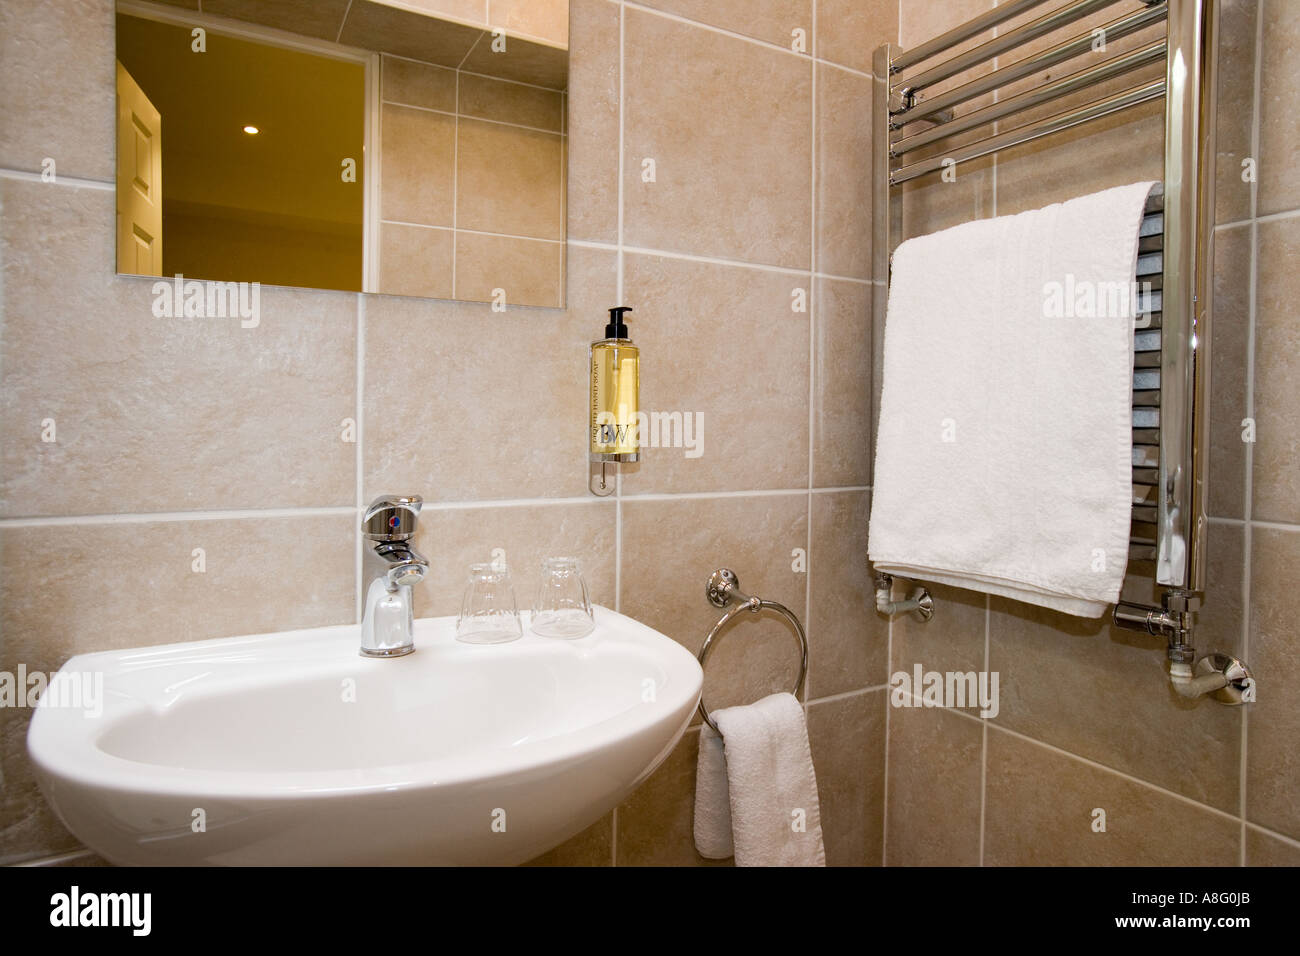 Attirant Bathroom Sink With Wall Mounted Soap Dispenser And Towel Rail